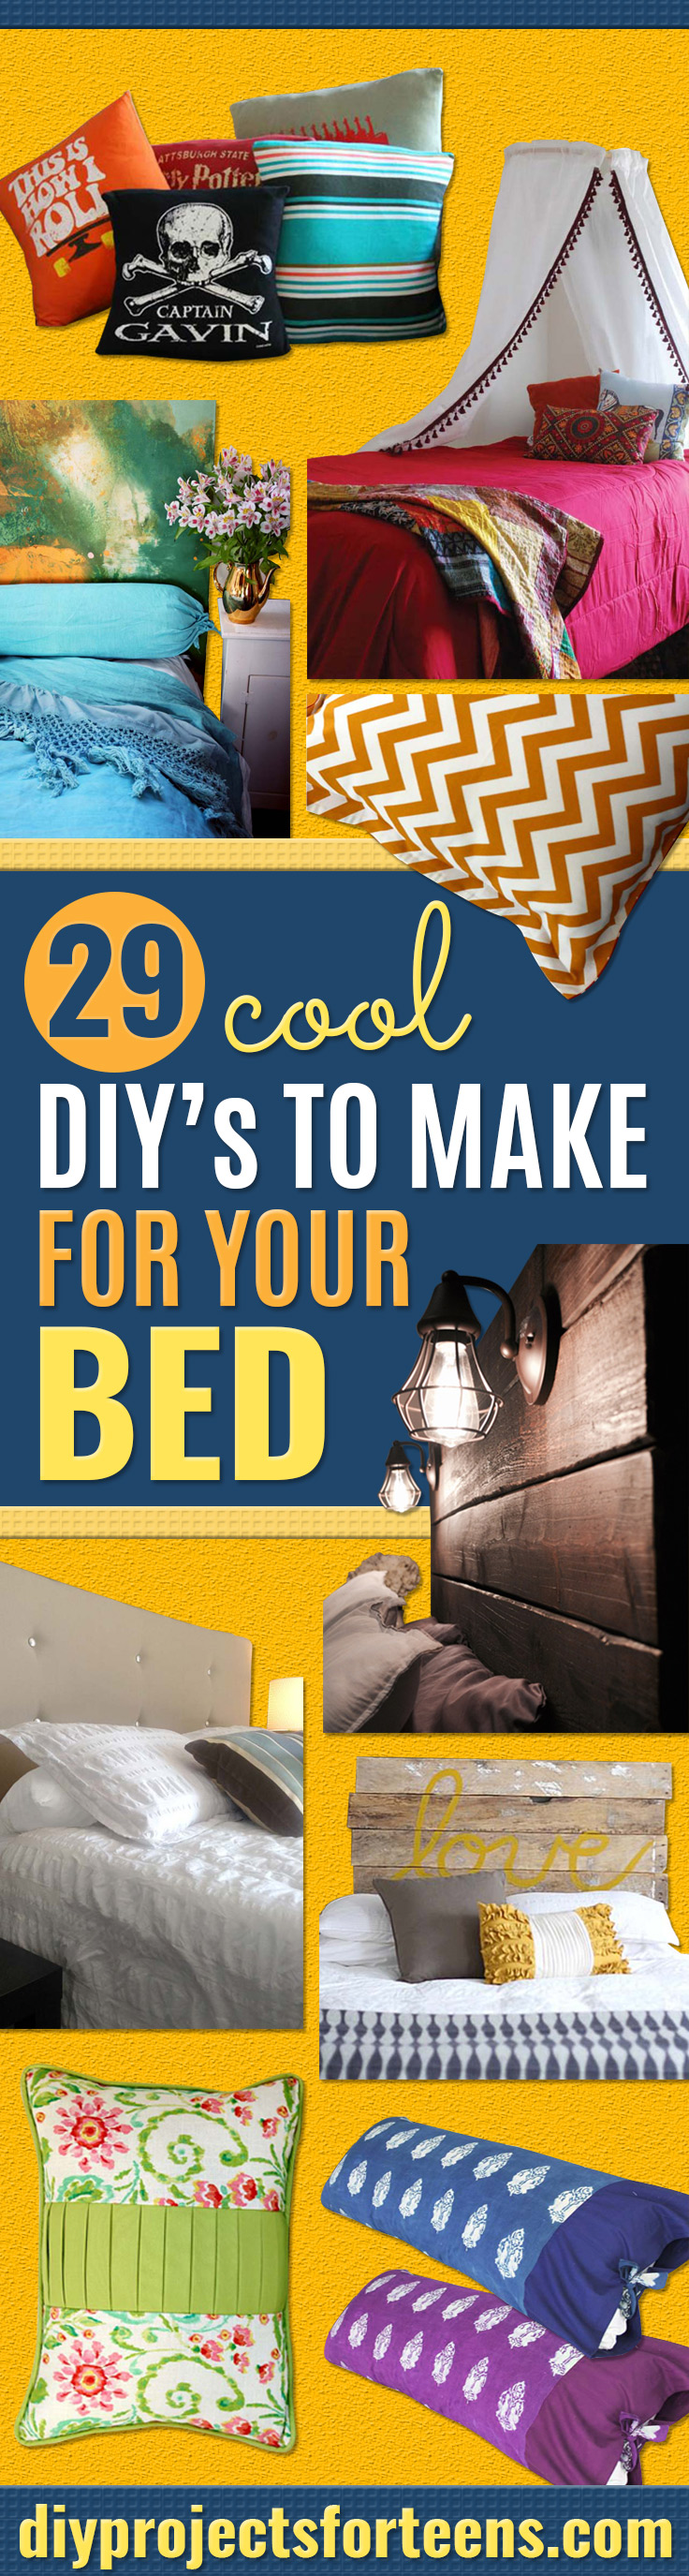 29-cool-diys-to-make-for-your-bed